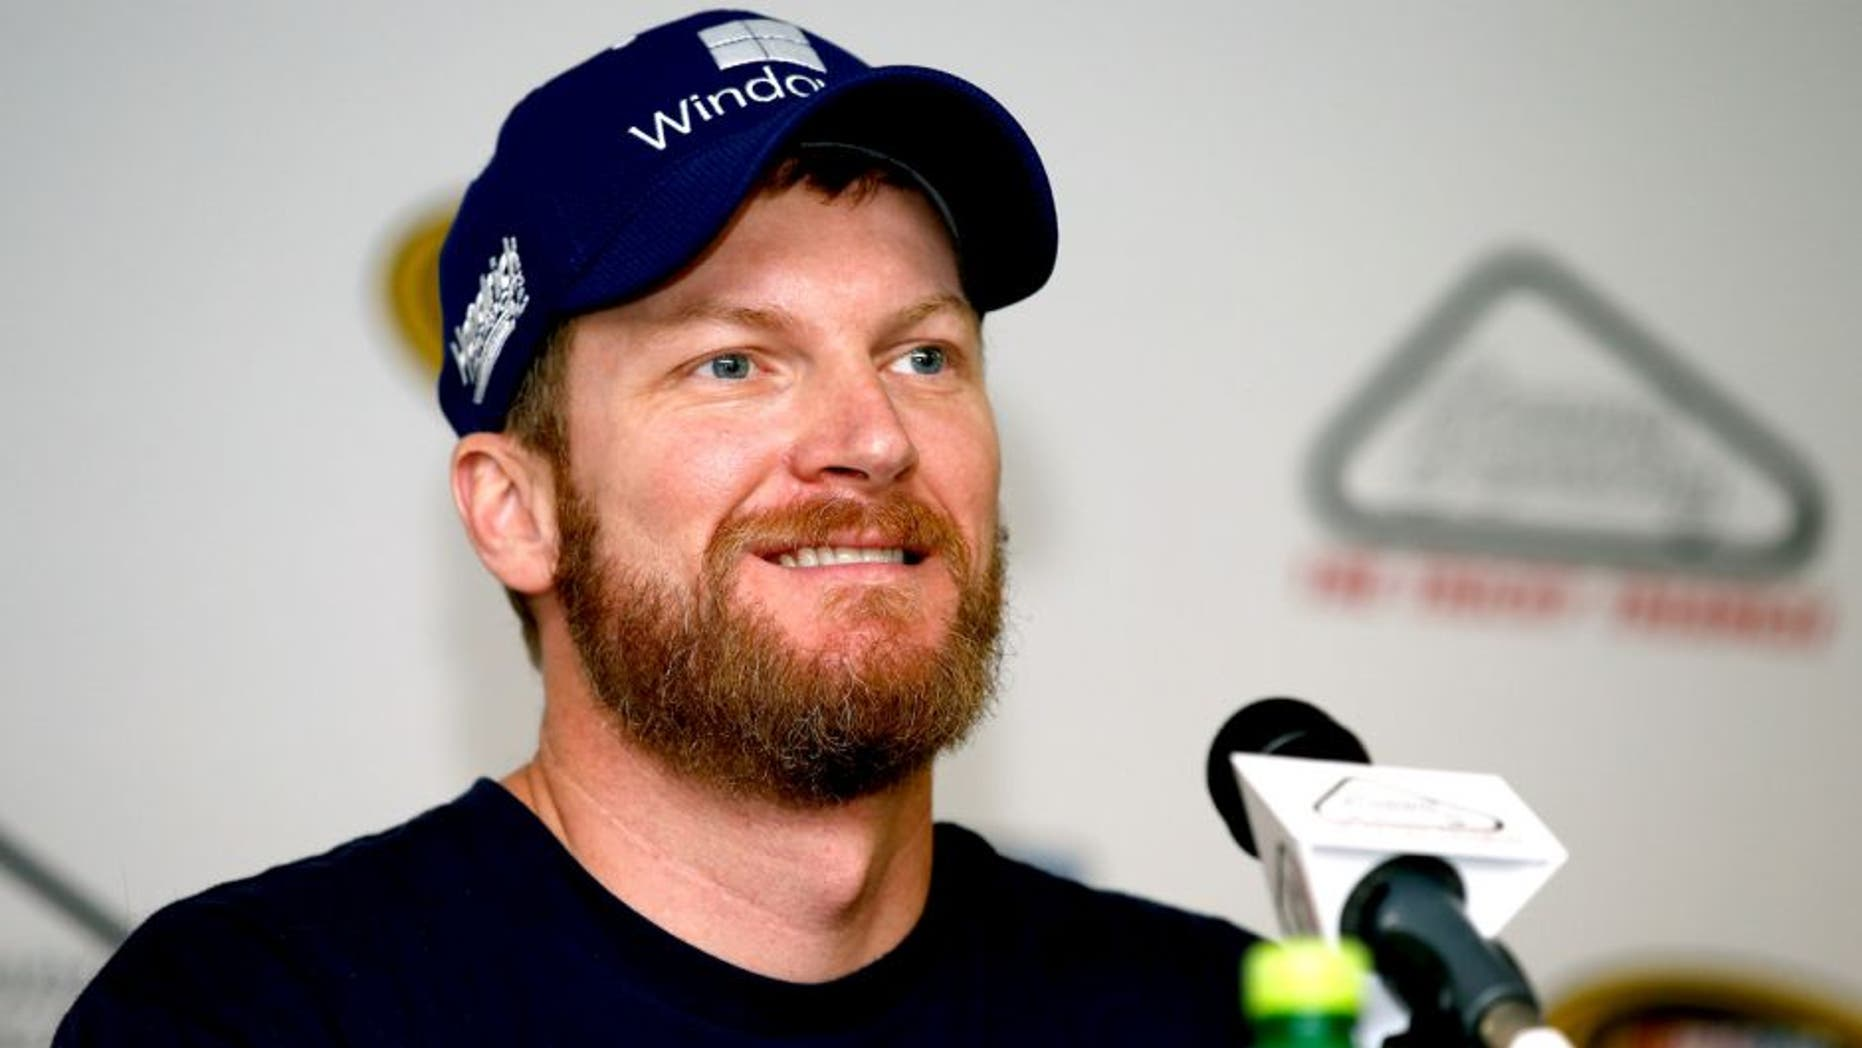 LONG POND, PA - JULY 31: Dale Earnhardt Jr., driver of the #88 Microsoft Chevrolet, speaks to the media following practice for the NASCAR Sprint Cup Series Windows 10 400 at Pocono Raceway on July 31, 2015 in Long Pond, Pennsylvania. (Photo by Todd Warshaw/NASCAR via Getty Images)